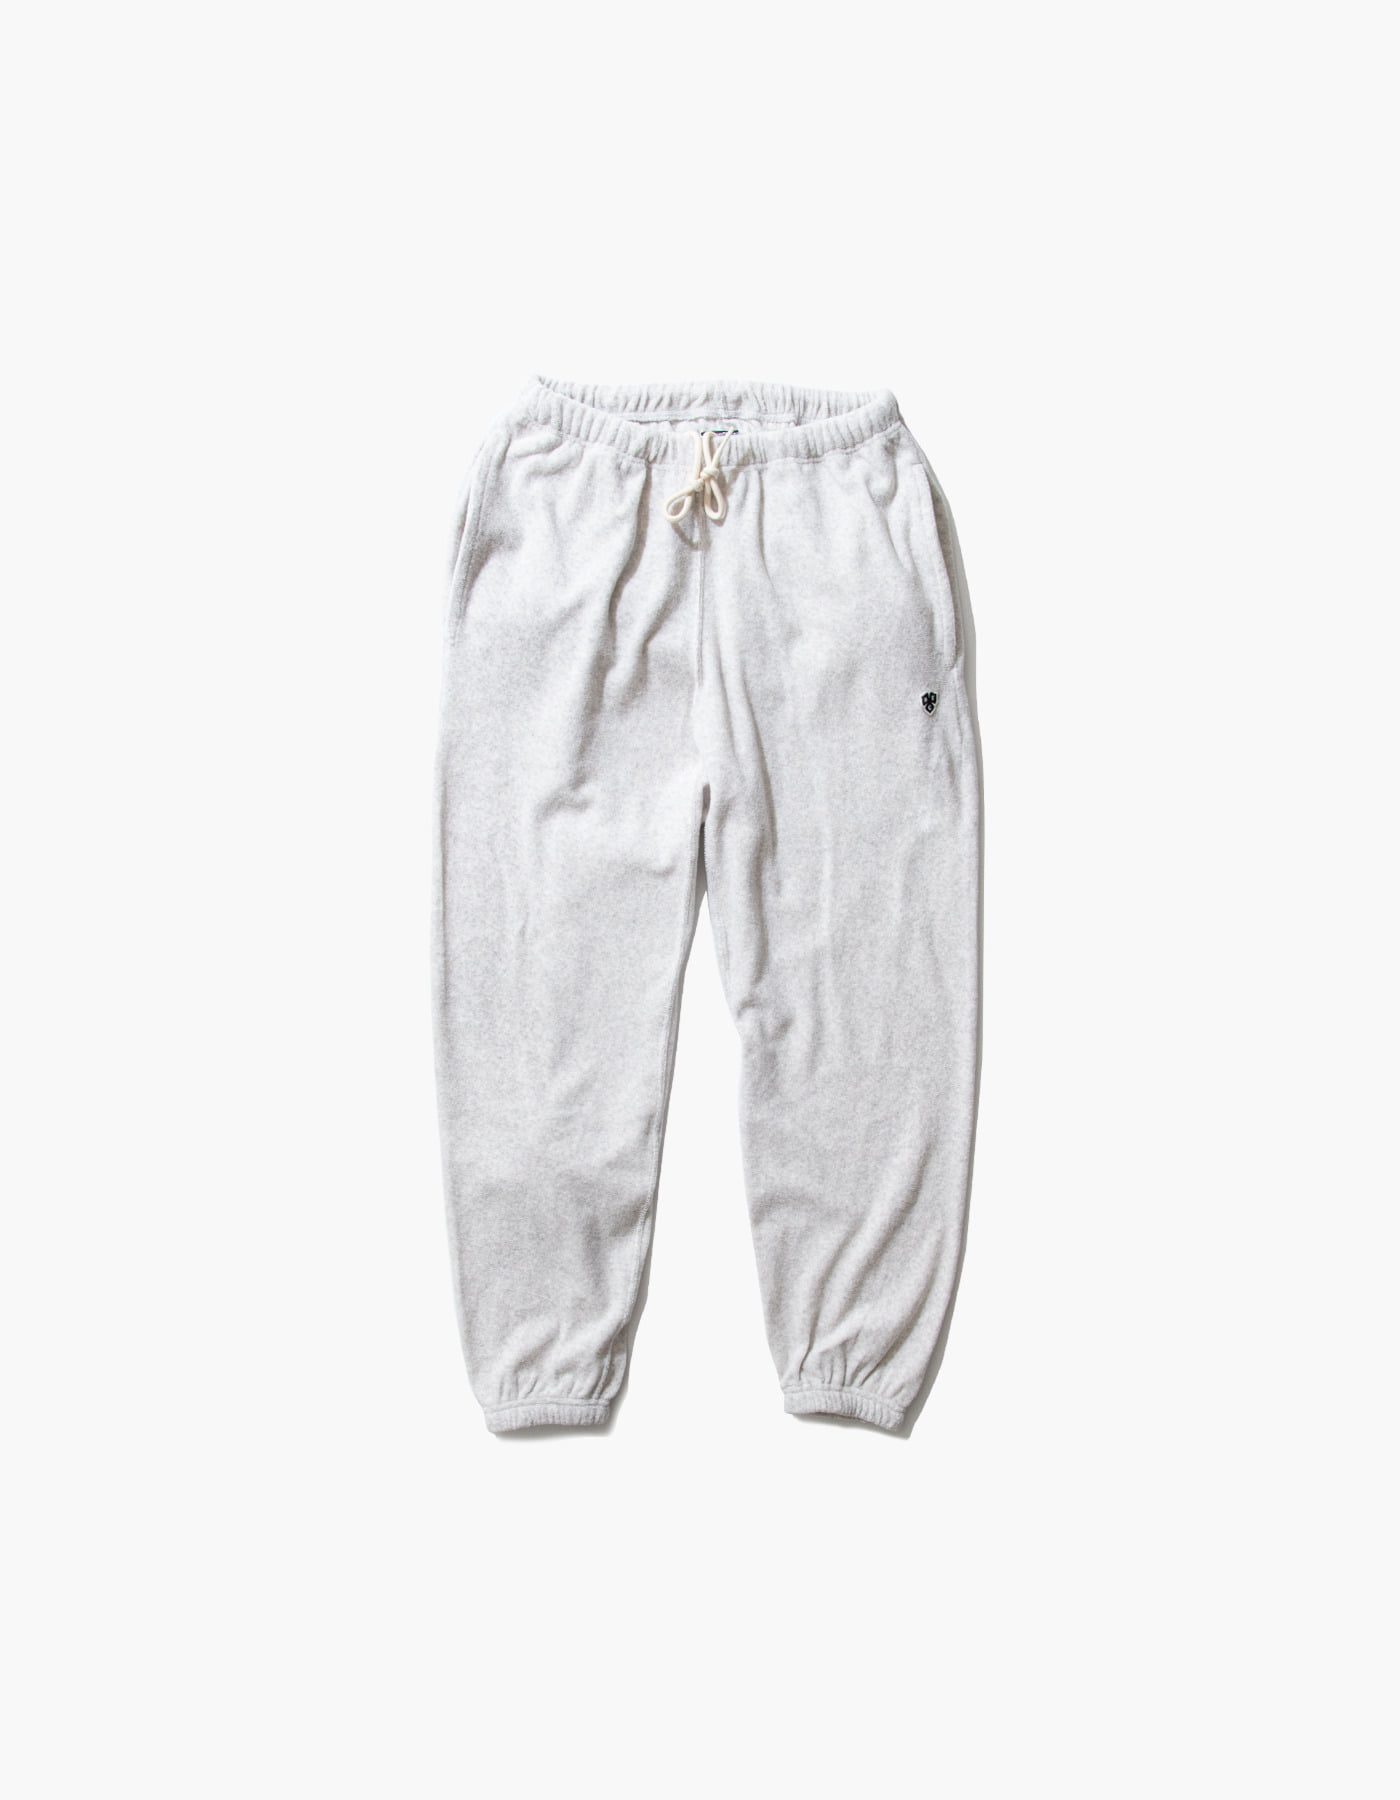 HFC CREST TOWEL JOGGER PANTS / M.GREY(1%)